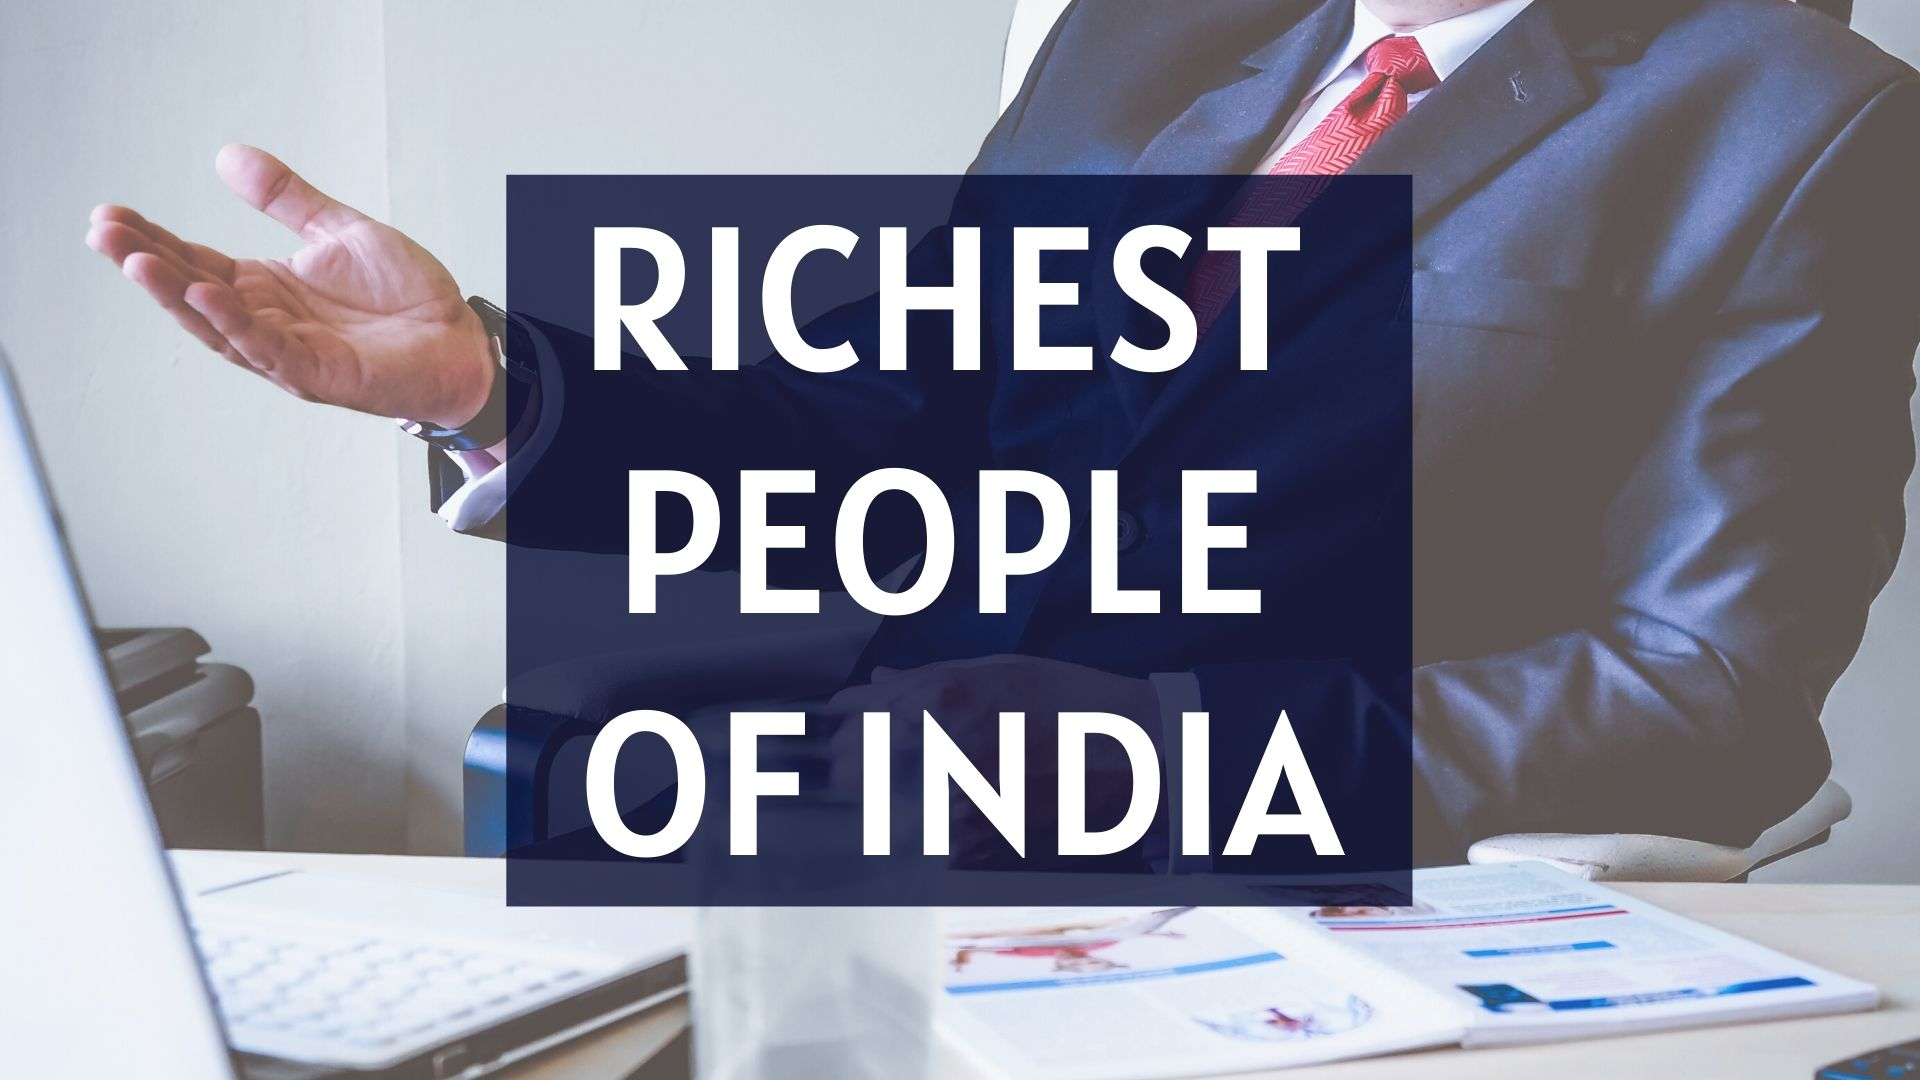 India's richest people